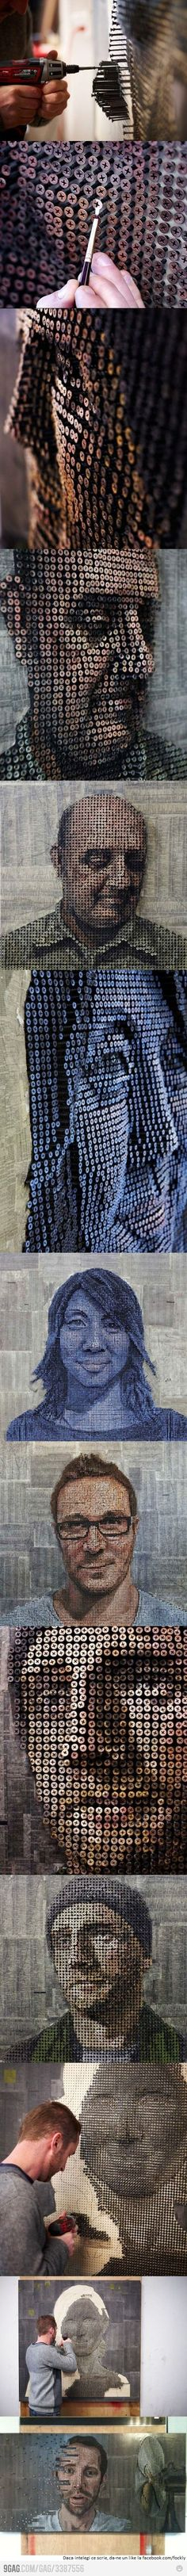 Amazing 3D portraits made out of screws by Andrew #3d art| http://awesome-beautiful-arts-collections.blogspot.com